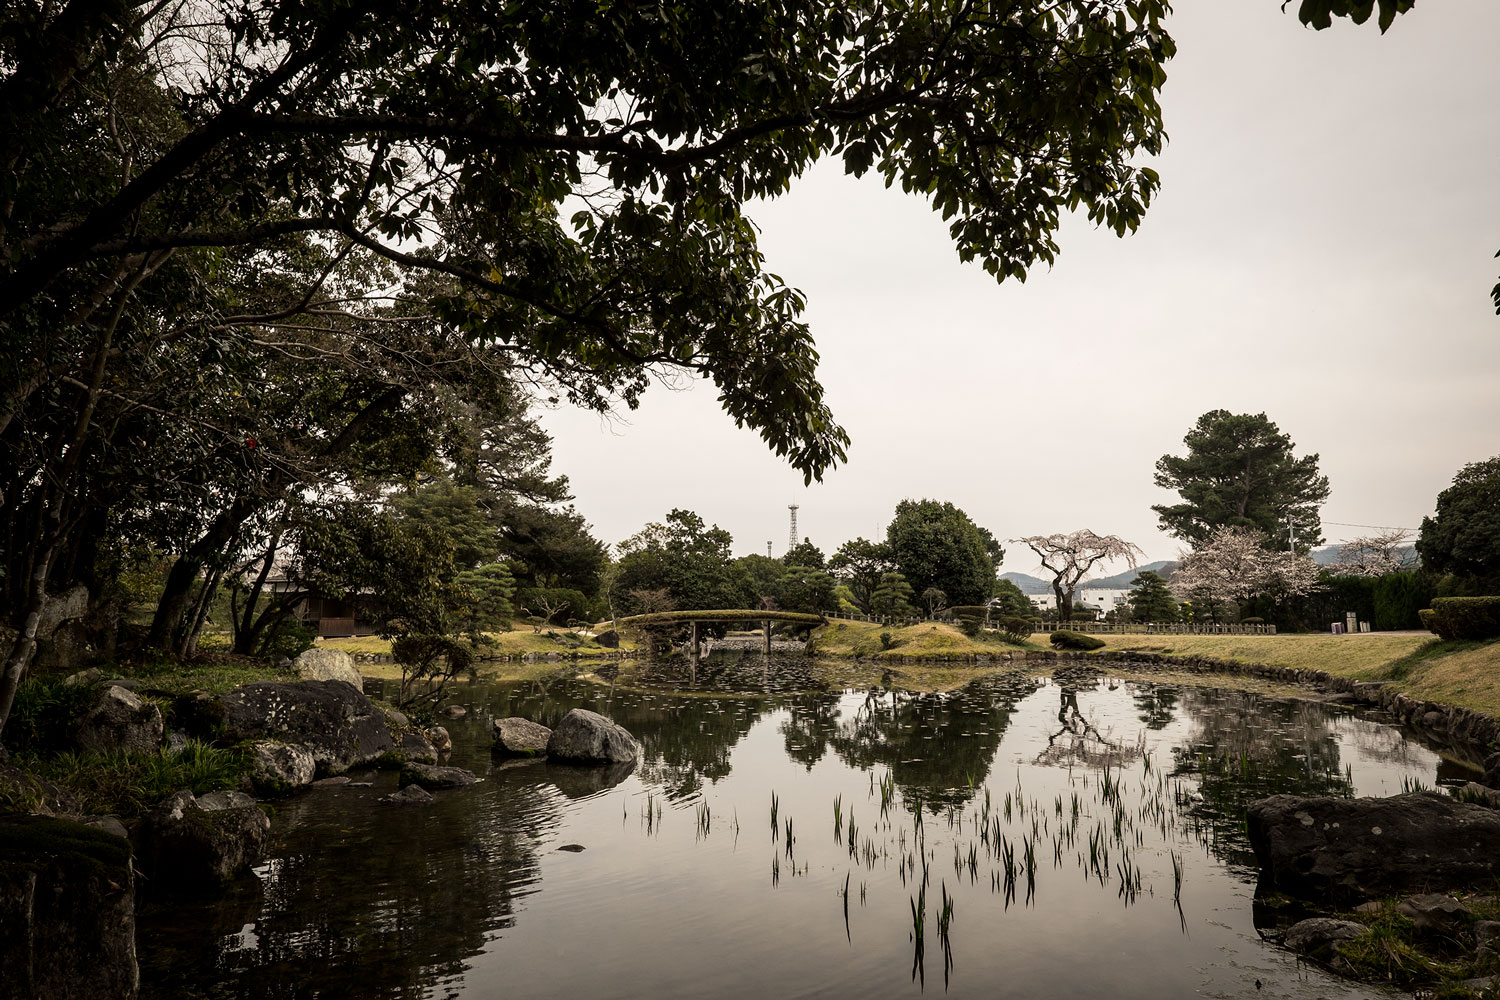 A quick visit at the Japanese gardens of Tsuyama